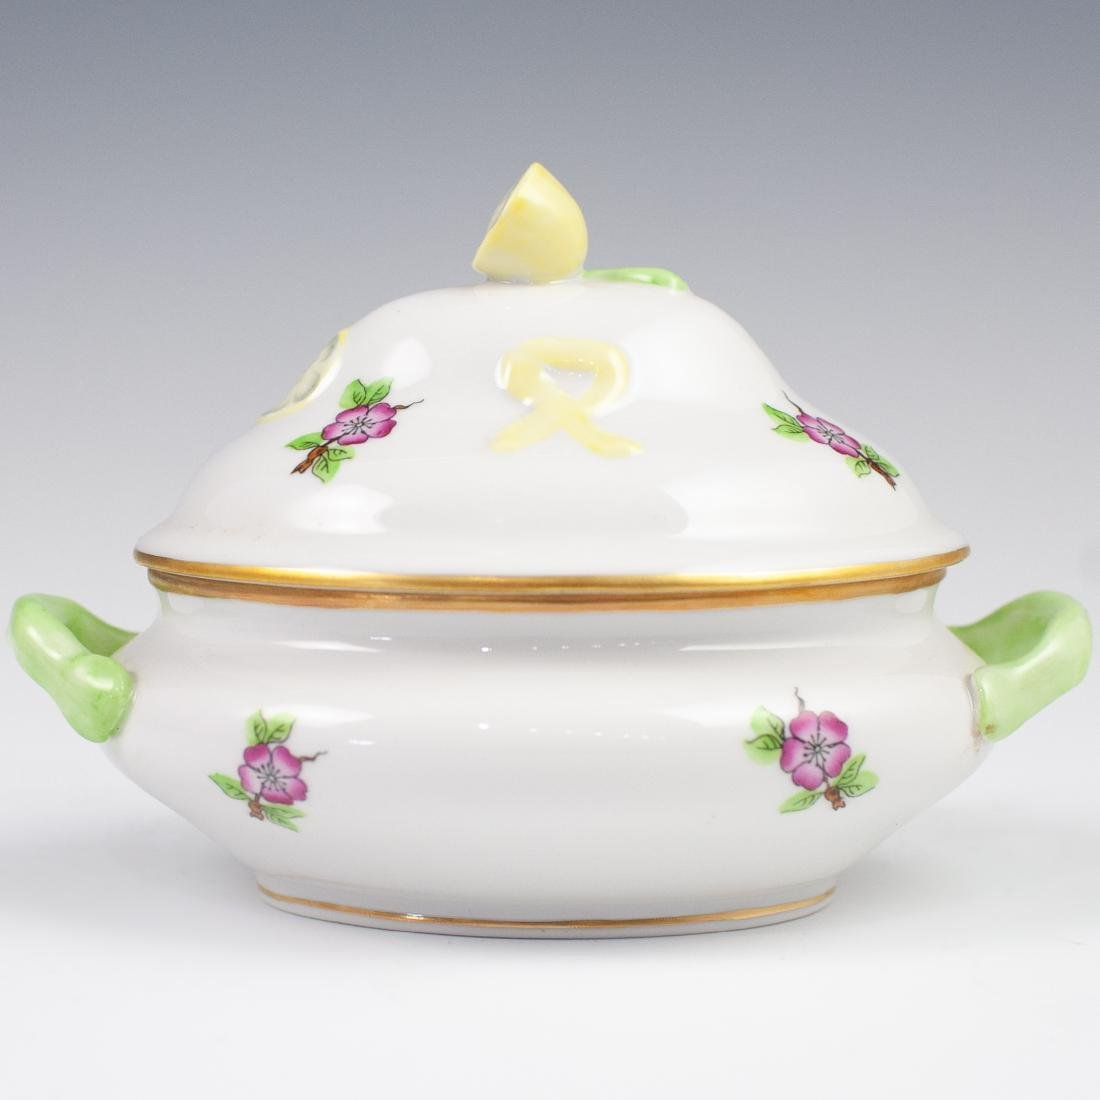 Herend Porcelain Miniature Tureen